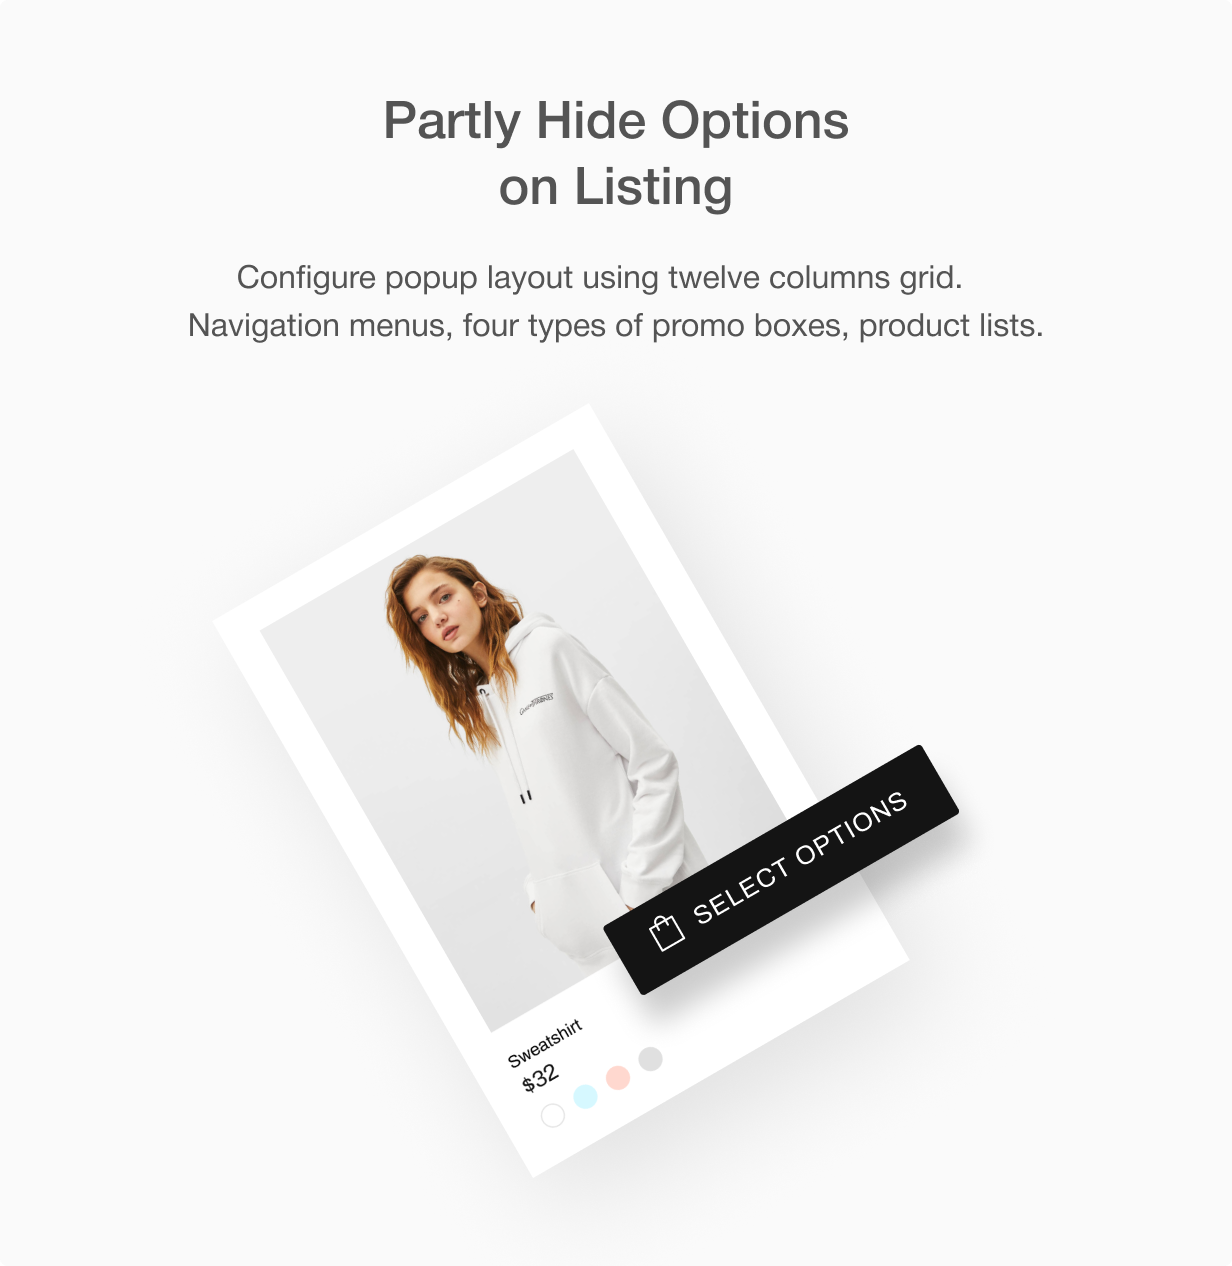 Hide some product options on listing. Change Add to cart button to Select options button